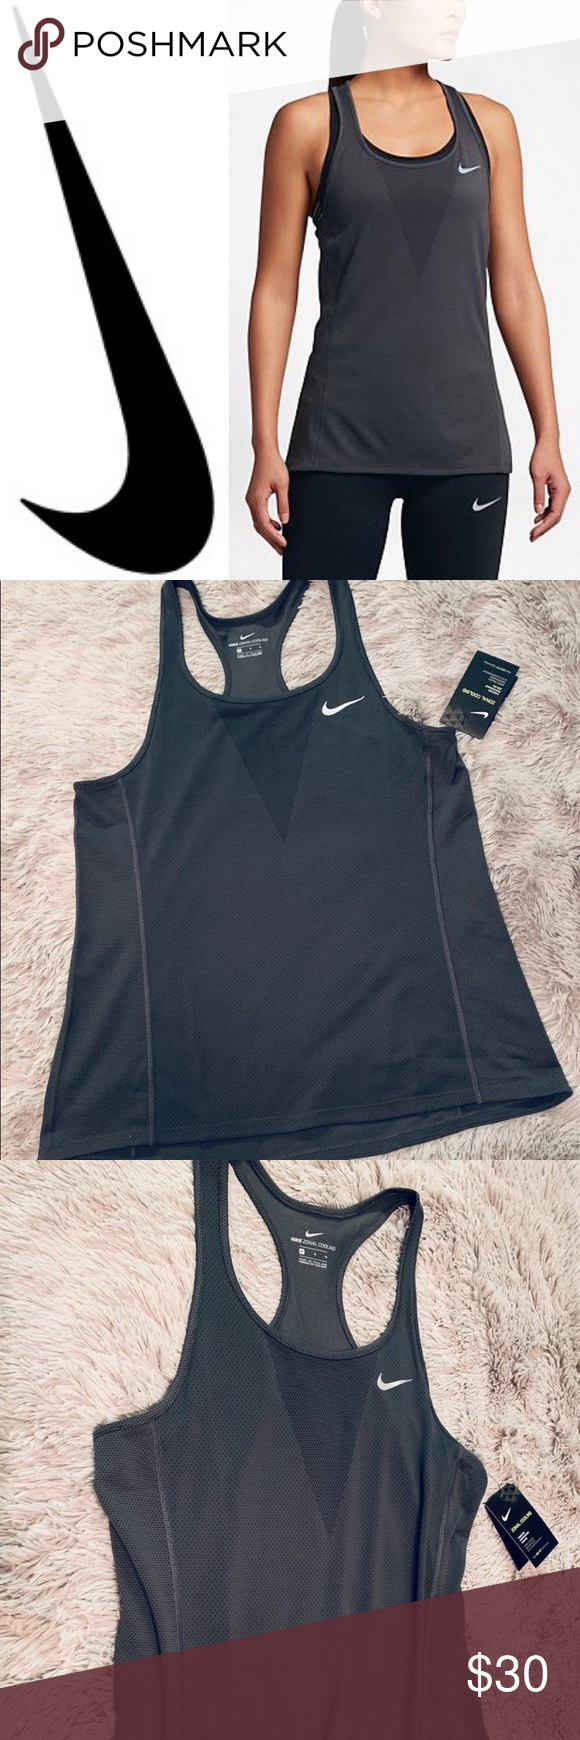 Sold Nike Grey Zonal Cooling Tank Top Tank Tops Clothes